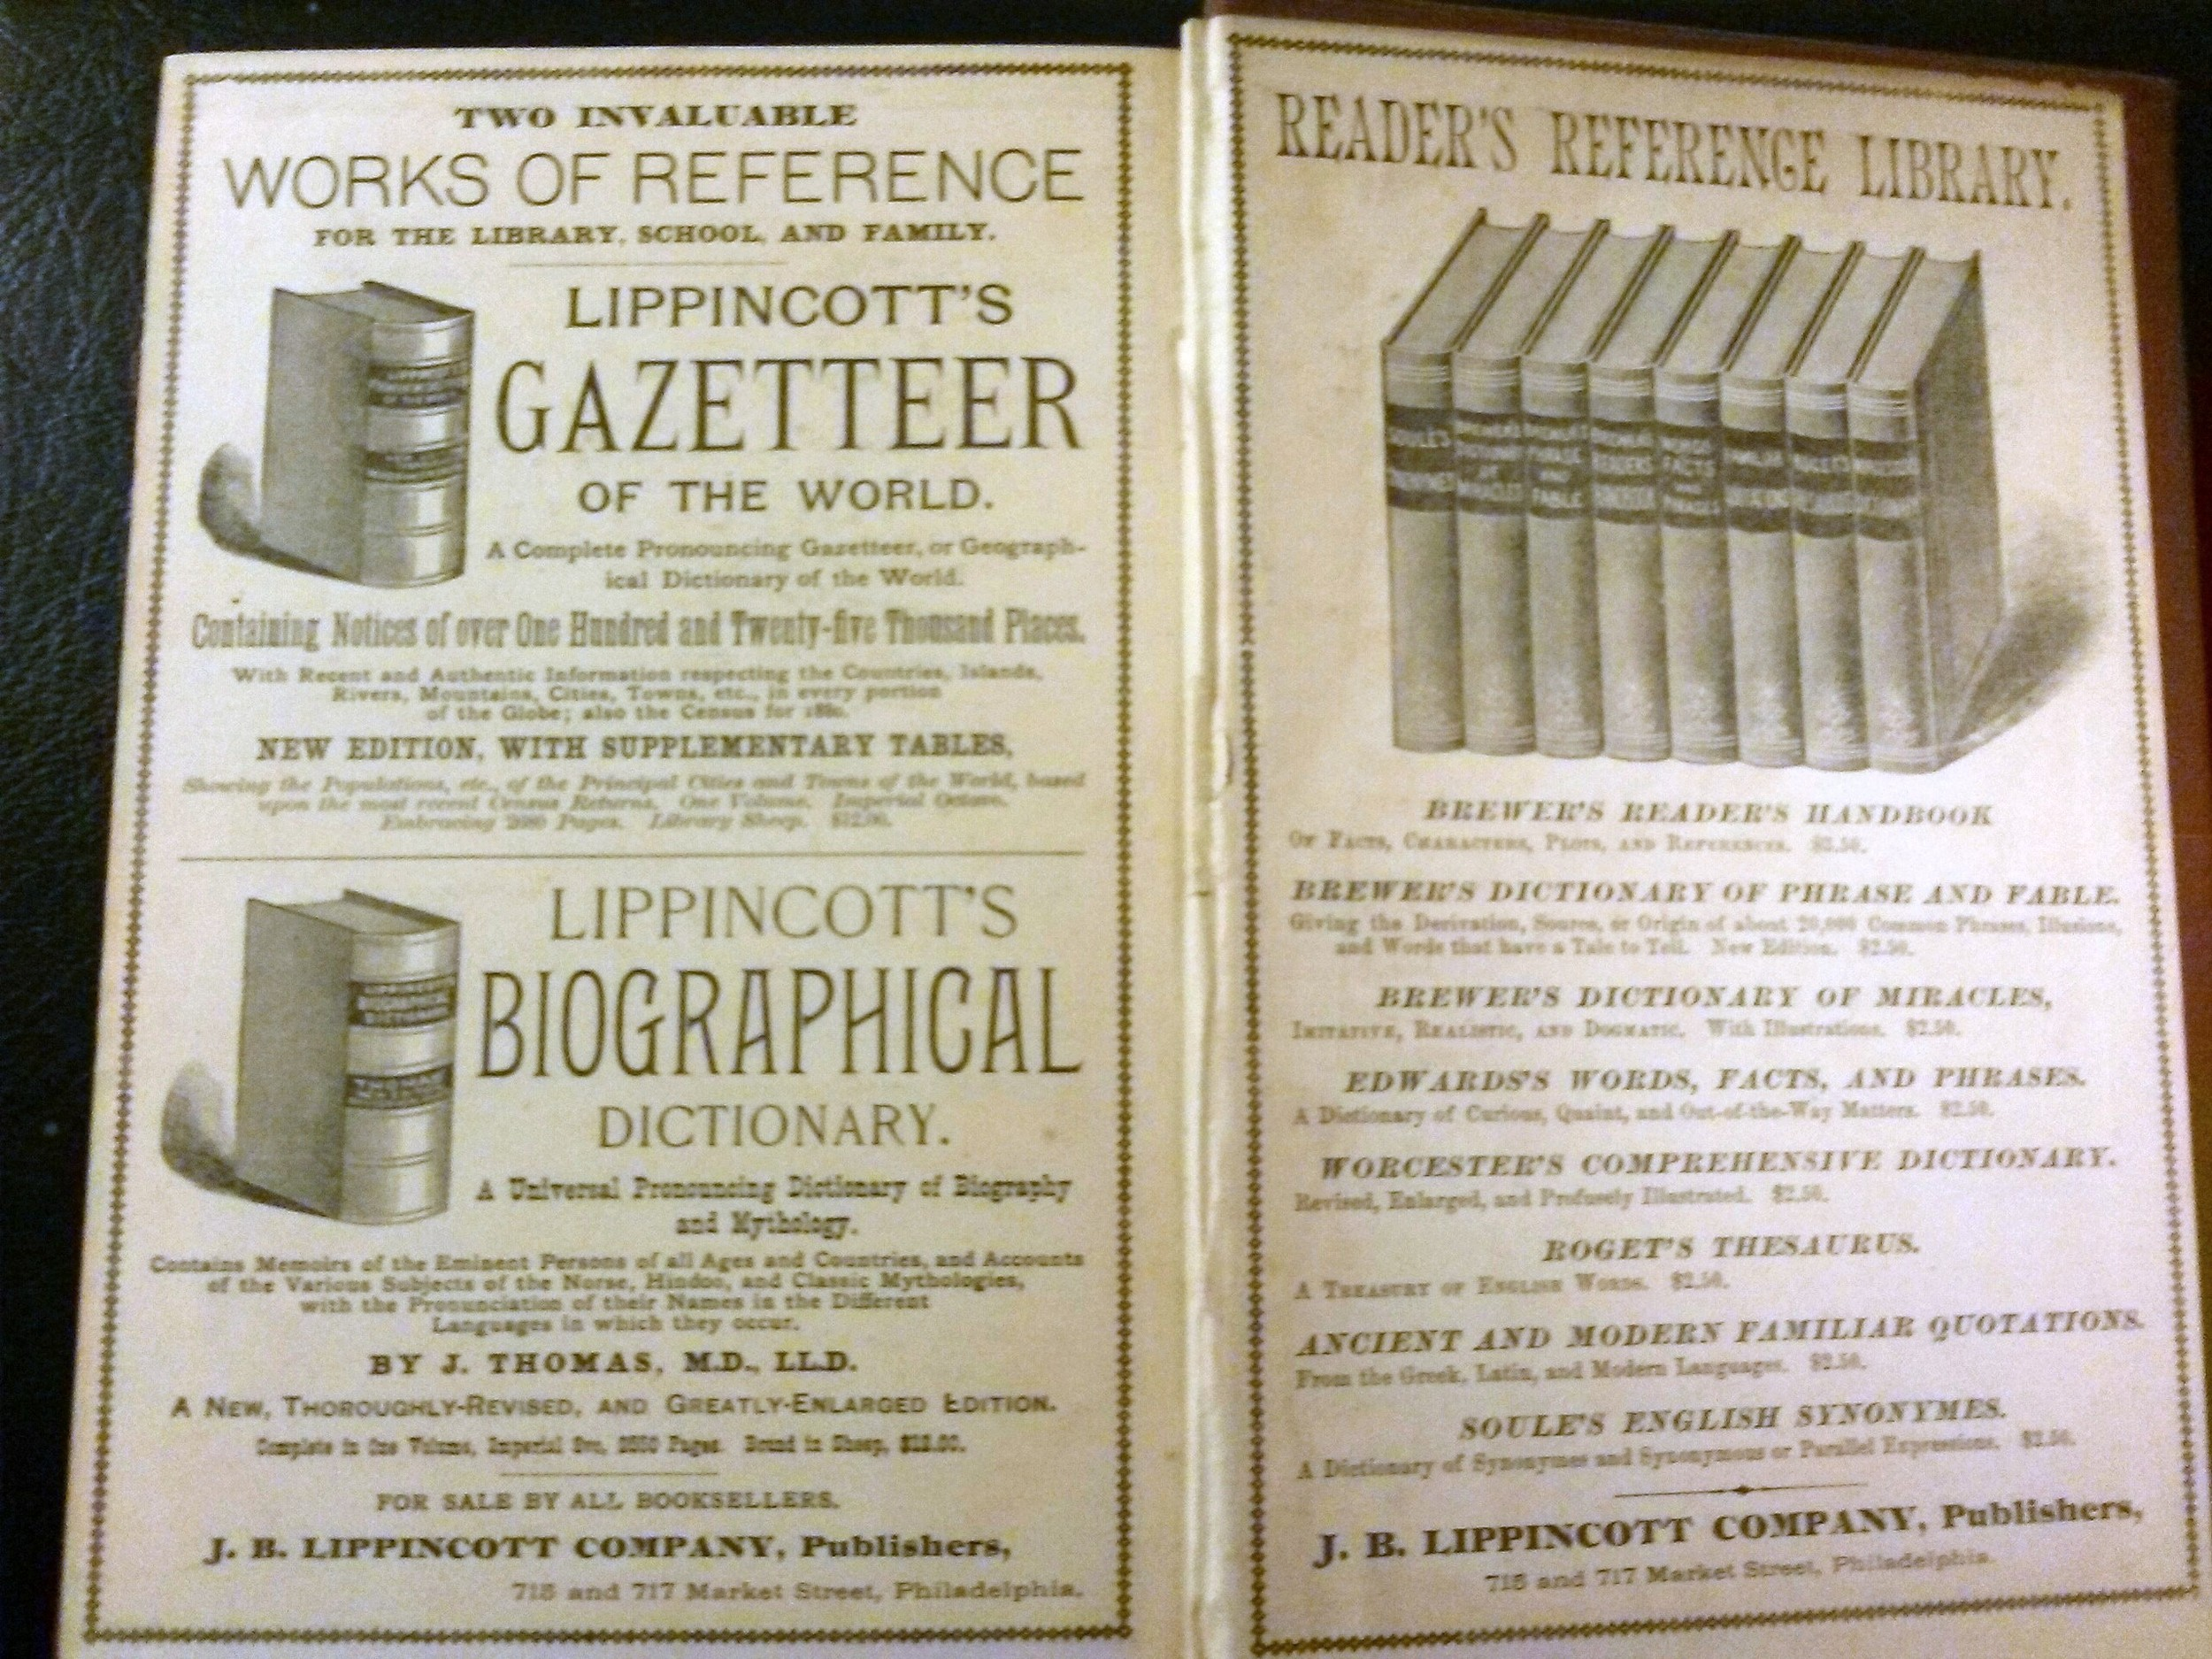 P&G Endpages 1887.jpg